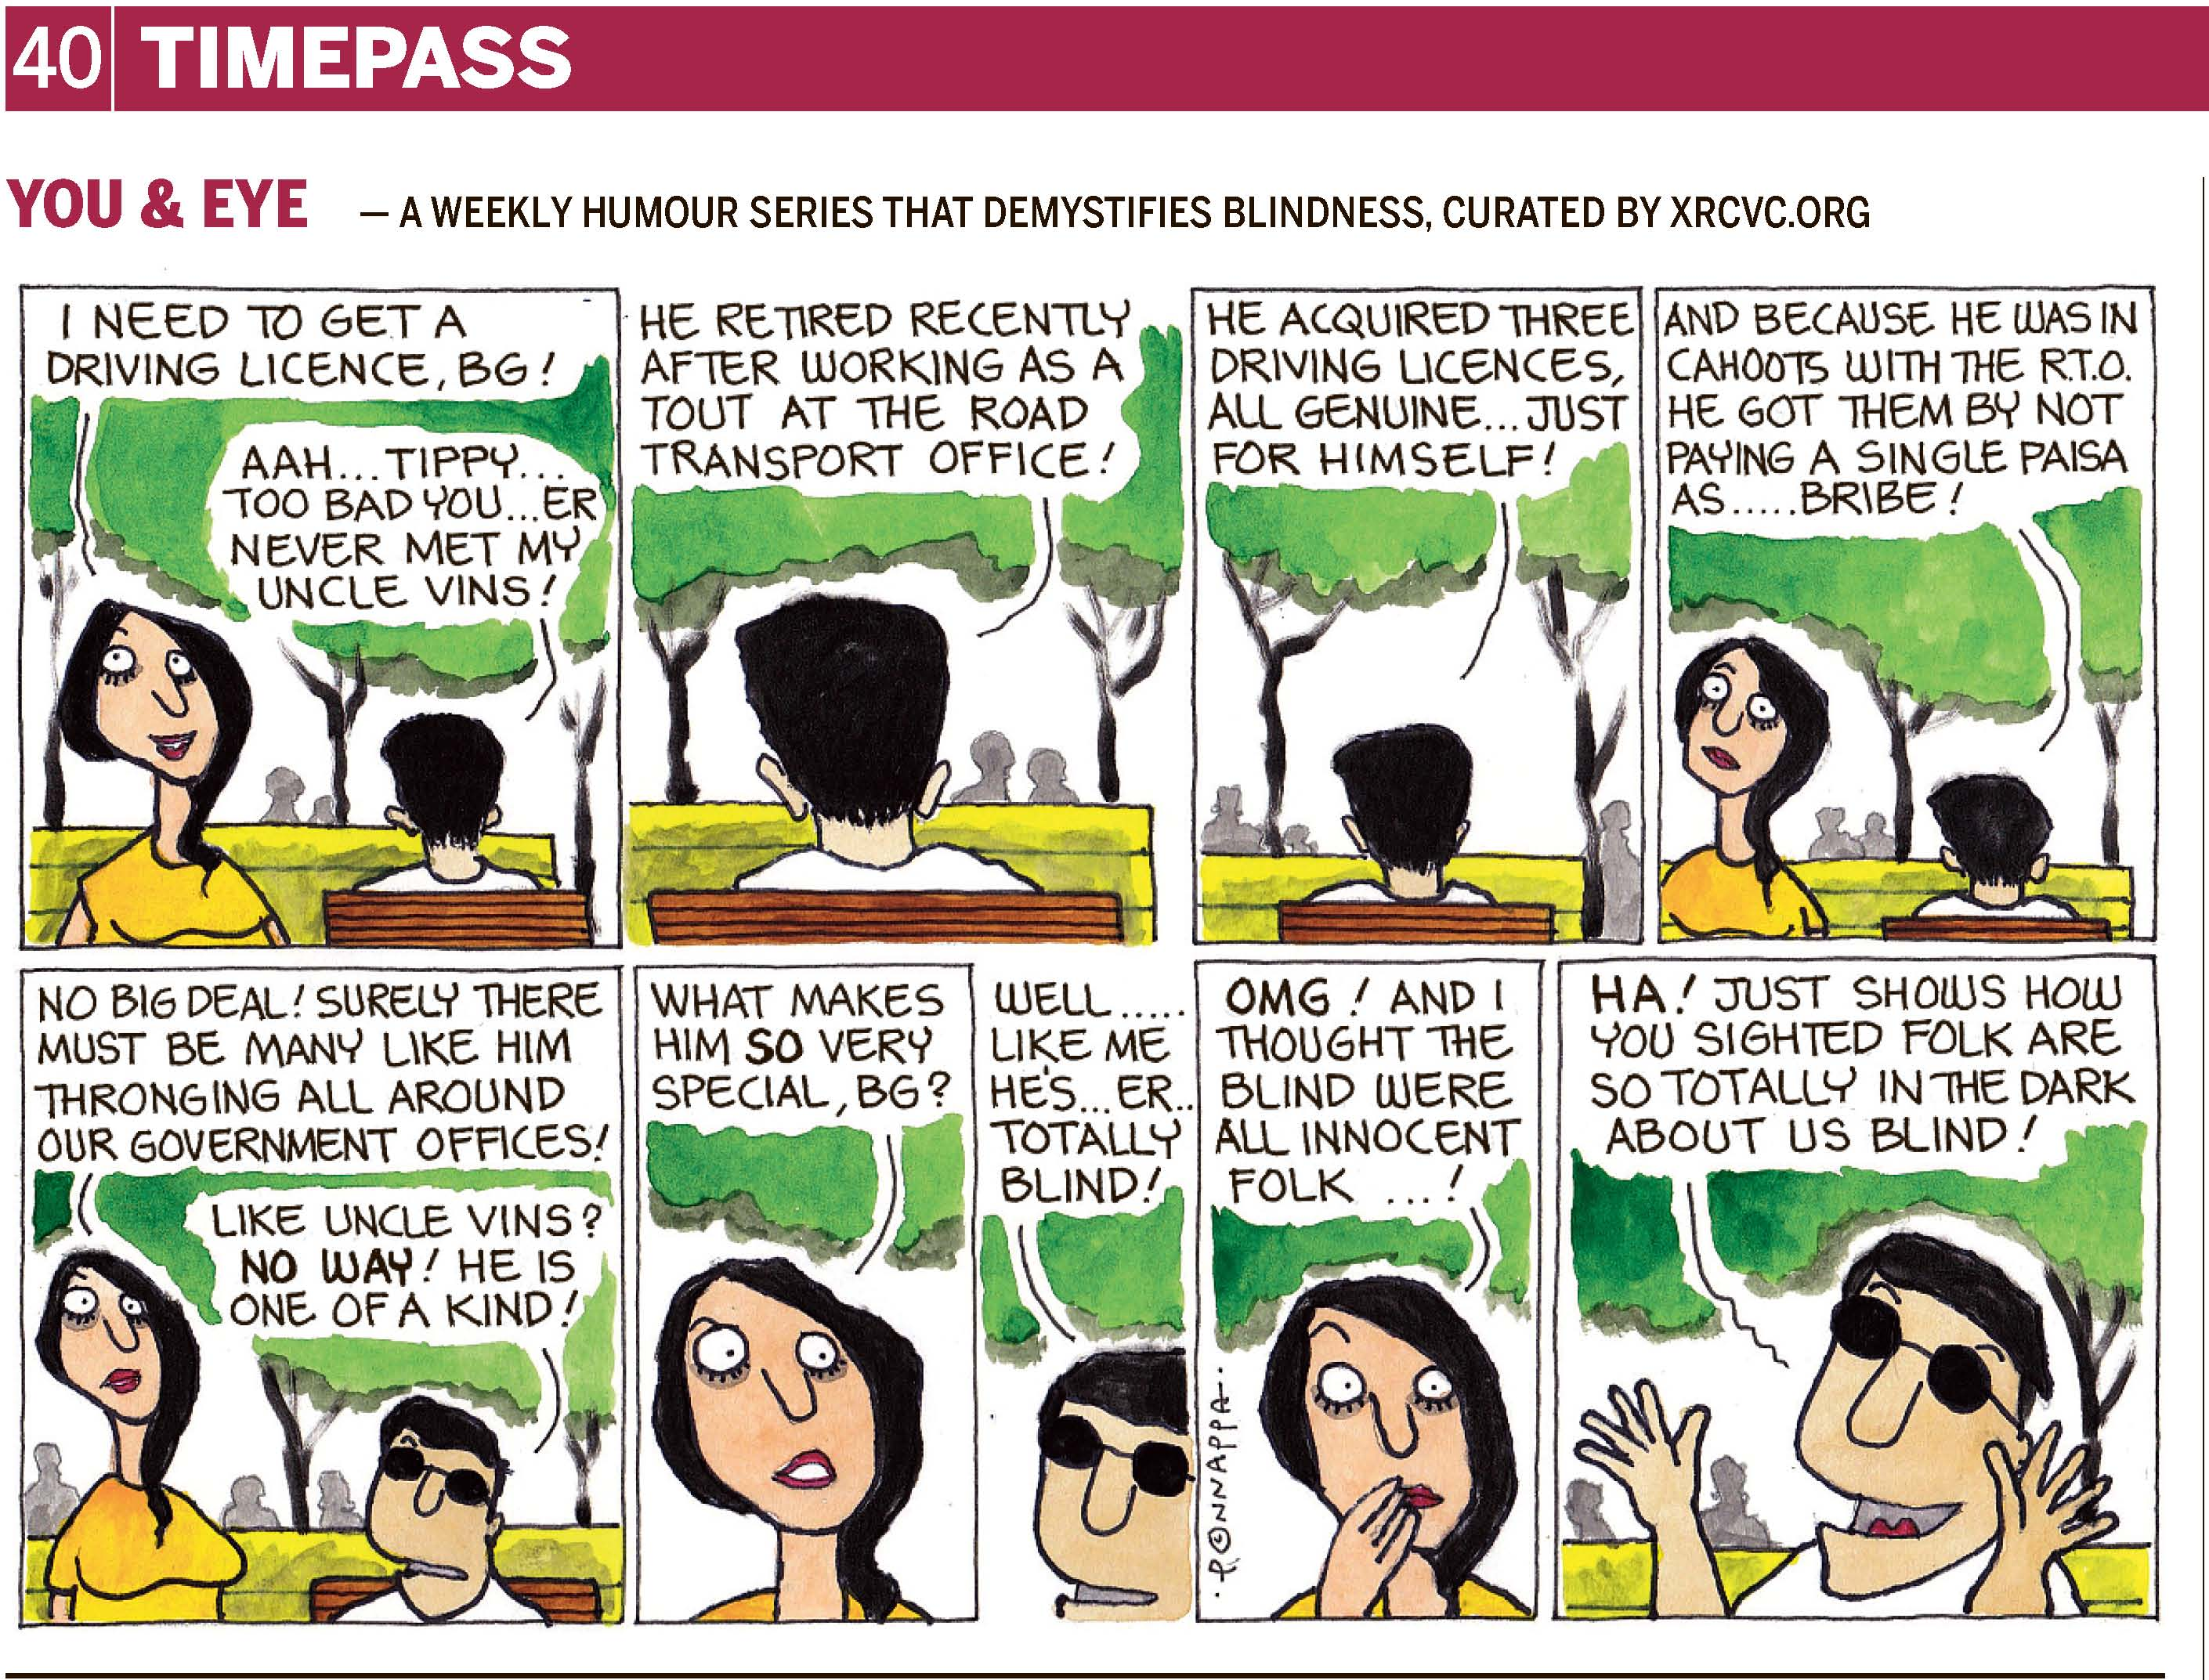 40 | TIMEPASS YOU & EYE – A WEEKLY HUMOUR SERIES THAT DEMYSTIFIES BLINDNESS, CURATED BY XRCVC.ORG Image description: A cartoon strip with 9 frames… Frame 1: (A sighted woman – Tippy – standing near a park seat. BG is seen from behind sitting down. Trees and silhouettes of 2 people are seen in the background.) Tippy: I need to get a driving licence, BG! BG: Aah… Tippy… too bad you… never met my Uncle Vins! Frame 2: (A close-up of BG seen from behind, sitting on the park seat. Trees and silhouettes of 2 people are seen in the background.) BG: He retired recently after working as a tout at the Road Transport Office! Frame 3: (BG seen from behind, sitting on the park seat. Trees and silhouettes of 3 people are seen in the background.) BG: He acquired three driving licences, all genuine… just for himself! Frame 4: (Tippy appears shocked as her eyes are wide open, standing near the park seat where BG is seen from behind sitting down. Trees and silhouettes of 2 people are seen in the  background.) BG: And because he was in cahoots with the R.T.O. he got them by not paying a single paisa as… bribe! Frame 5: (Tippy appears dismayed with her lips curled, as she stands near the park seat where BG is seen wearing dark glasses while seated. Trees and silhouettes of 3 people are seen in the  background.) Tippy: No big deal! Surely there must be many like him thronging all around our government offices! BG: Like Uncle Vins? NO WAY! He is one of a kind! Frame 6: (A close-up of Tippy wondering with eyebrows raised and an open mouth) Tippy: What makes him SO very special, BG? Frame 7: (A close-up of BG, wearing dark glasses) BG: Well… like me… he's… er… totally blind! Frame 8: (A close-up of Tippy flabbergasted with her right hand near her mouth and eyebrows raised) Tippy: OMG! And I thought the blind were all innocent folk…! Frame 9: (A close-up of BG, wearing dark glasses and grinning, with his arms raised on either side of his face, and all fingers spread out, representing a dramatic announcement) BG: Ha! Just shows how you sighted folk are so totally in the dark about us blind! (Signed Ponnappa, in Frame 8)